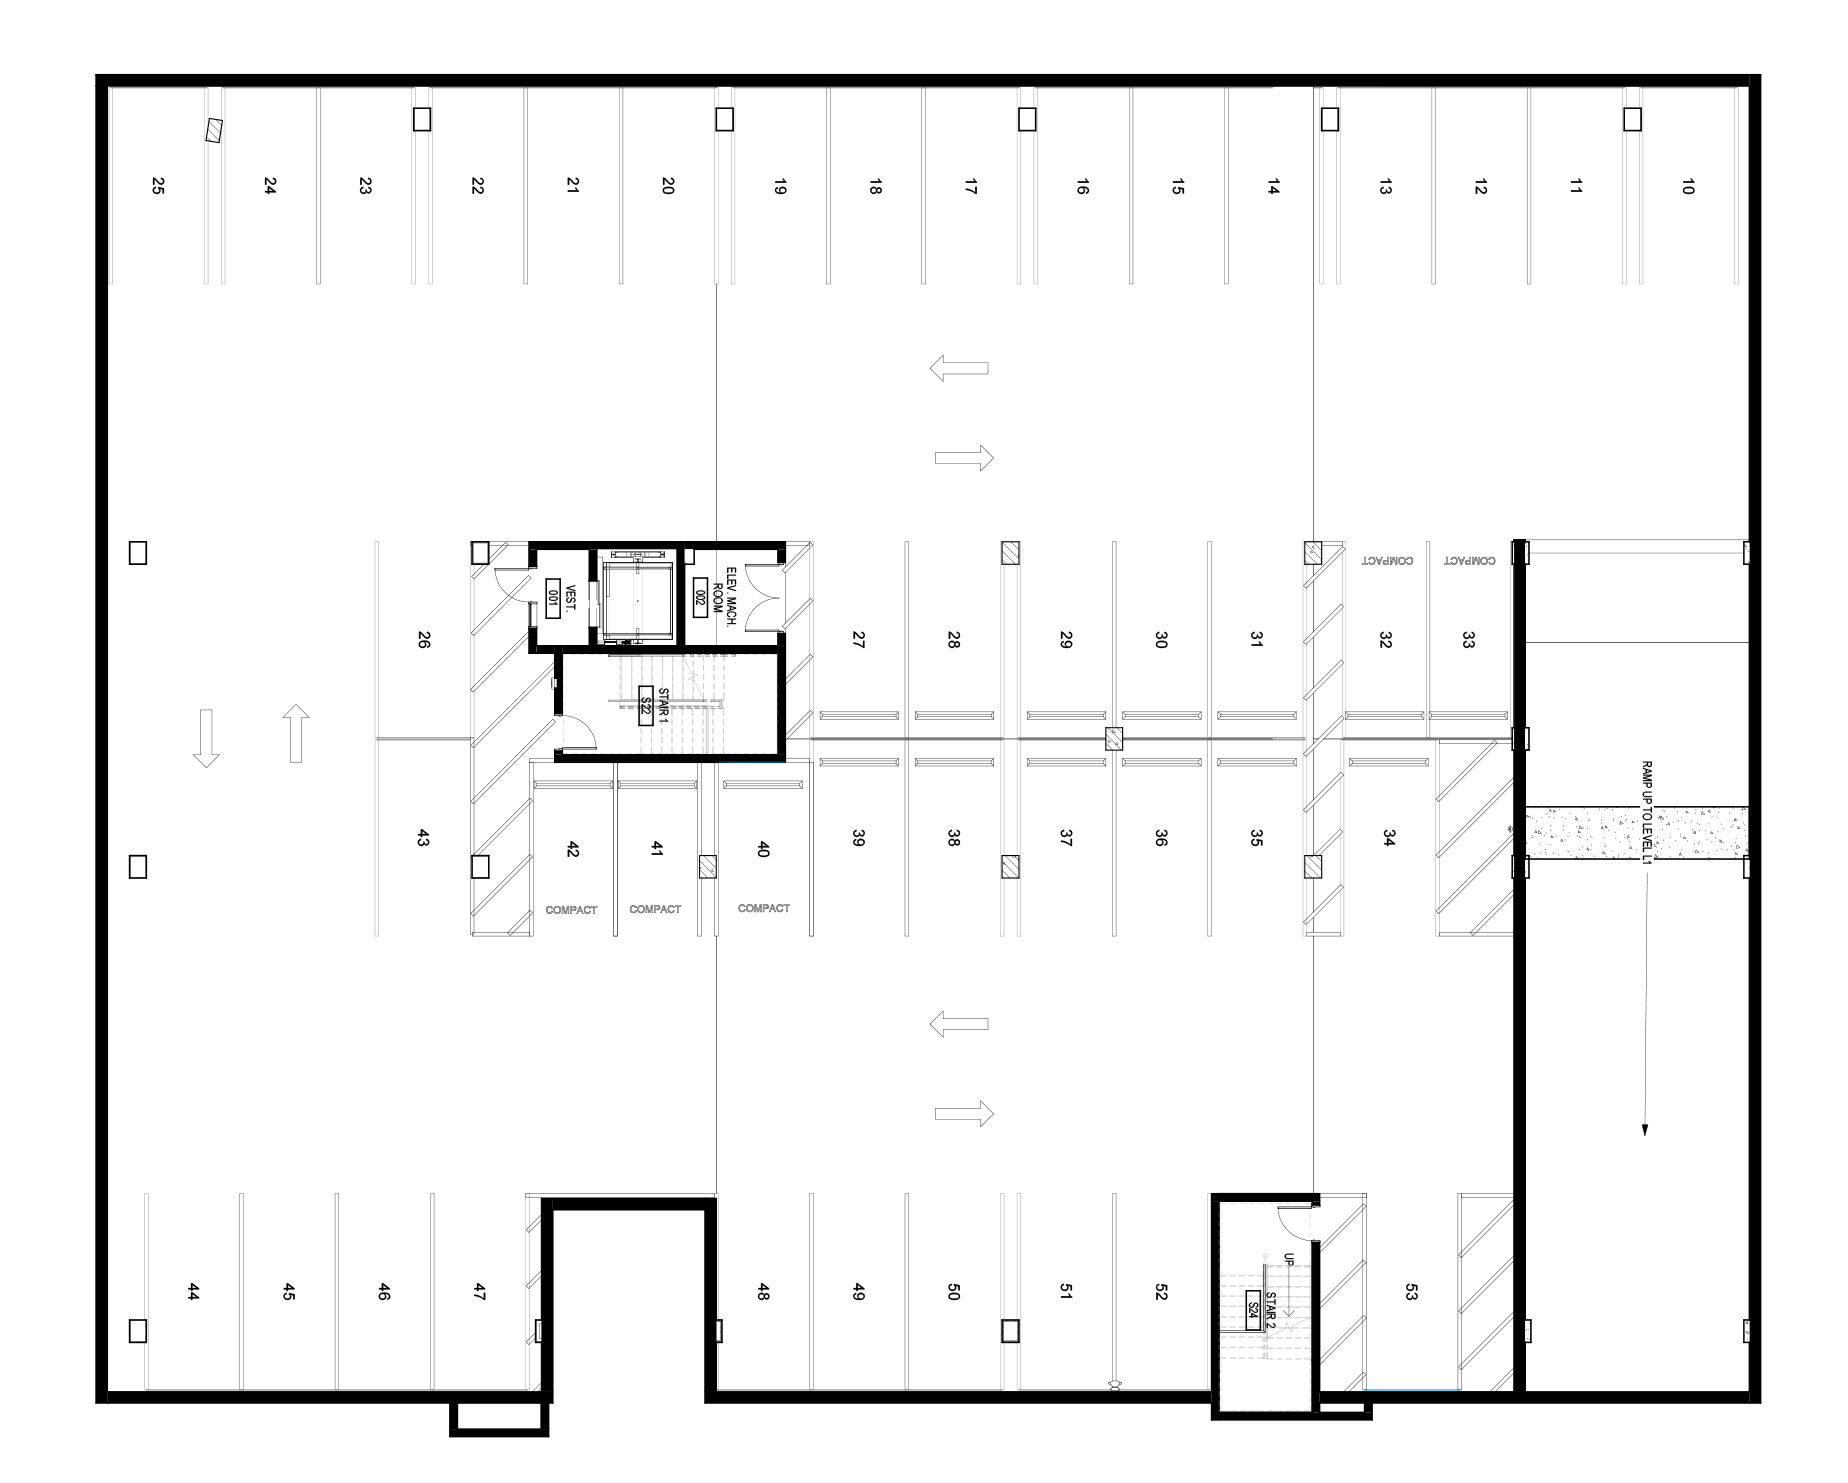 Parking Level Floor Plan image